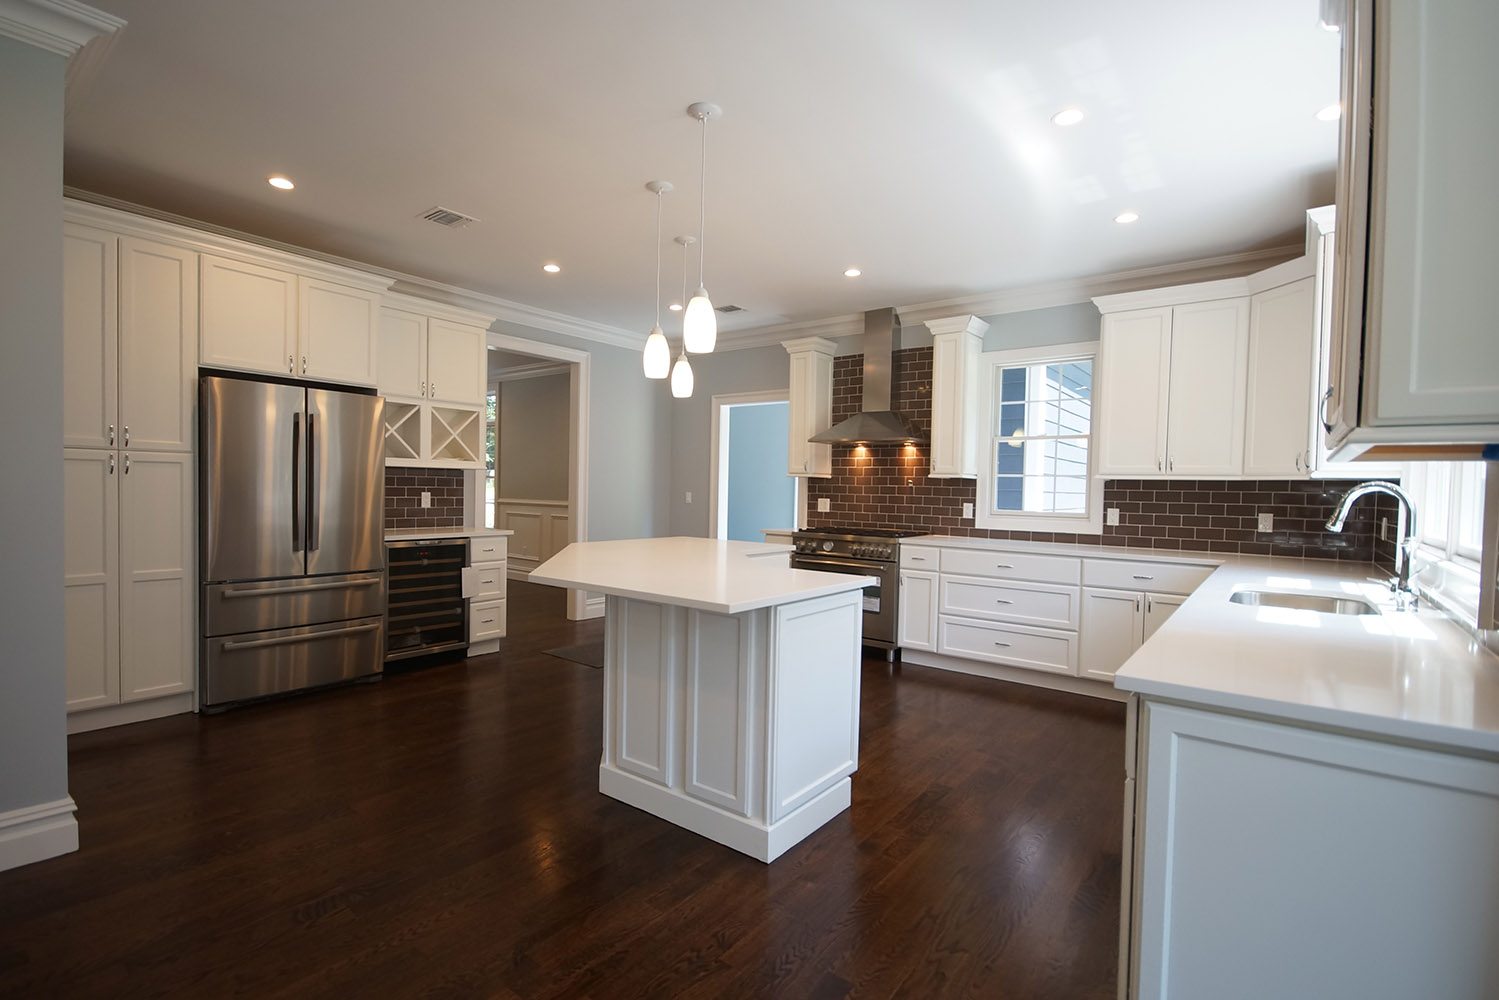 If You Install Hardwood Floor Ii a Kitchen You Will Have More Options